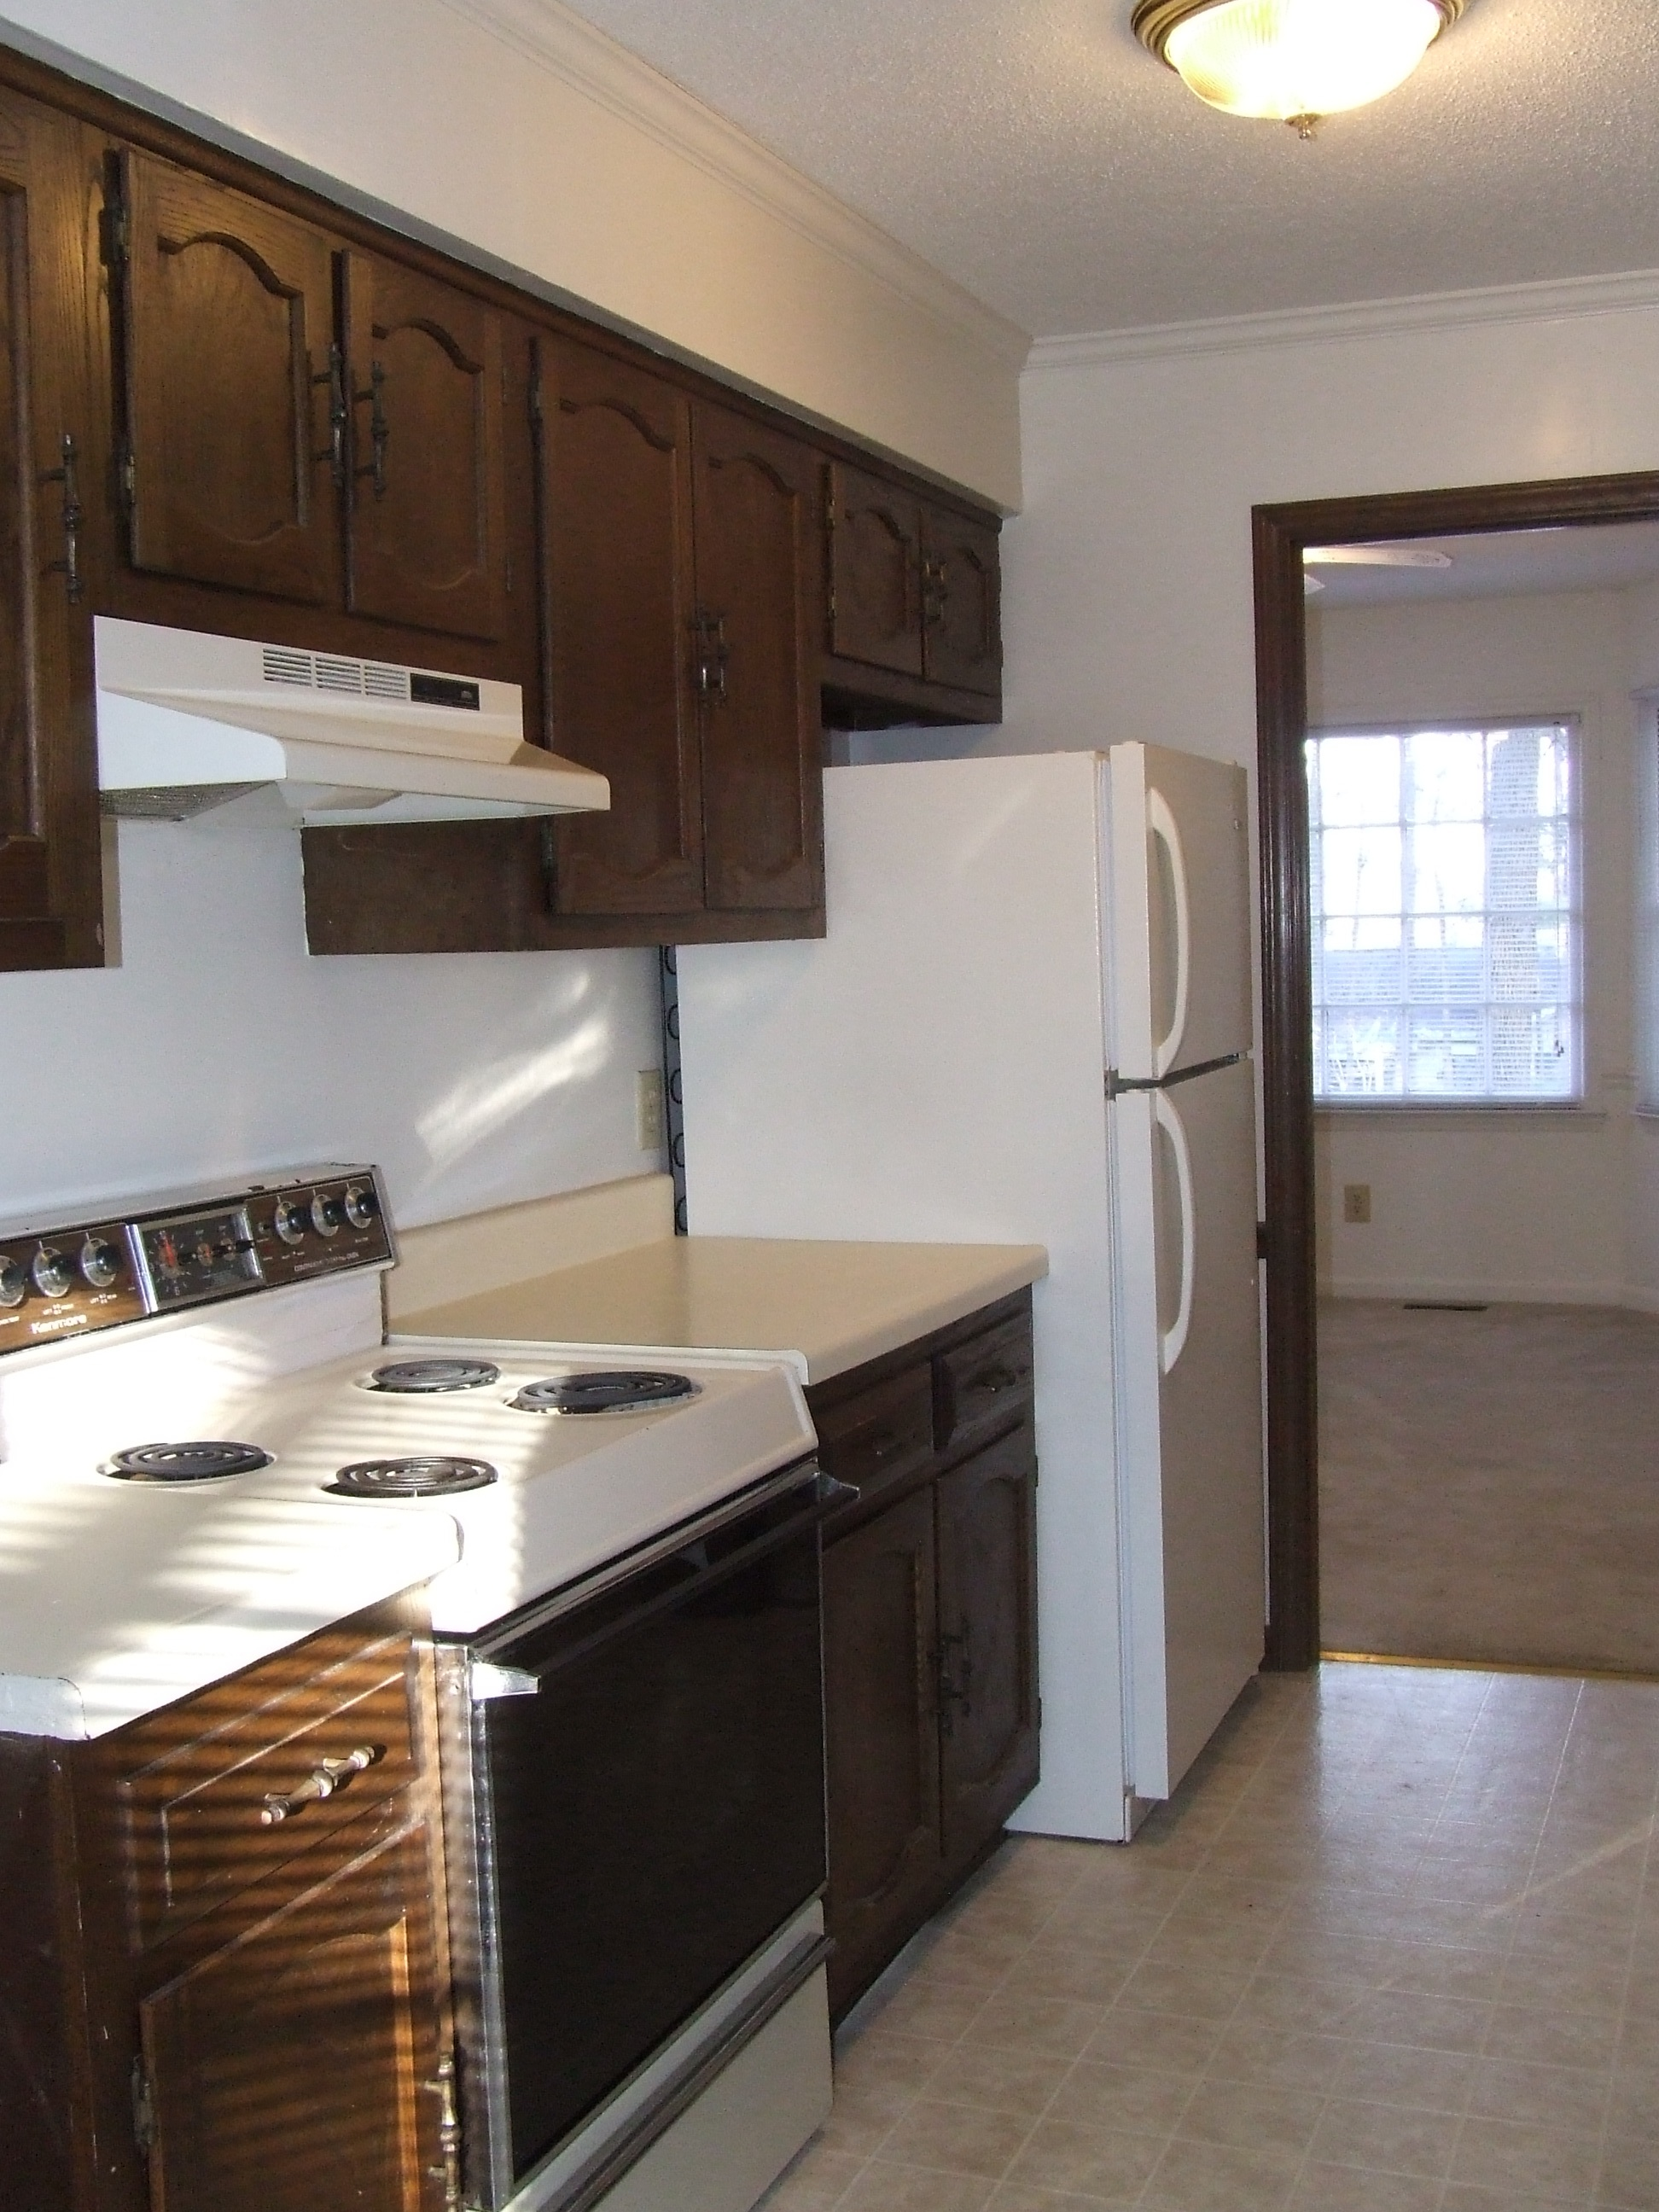 Nice Kitchen with plenty of Cabinets